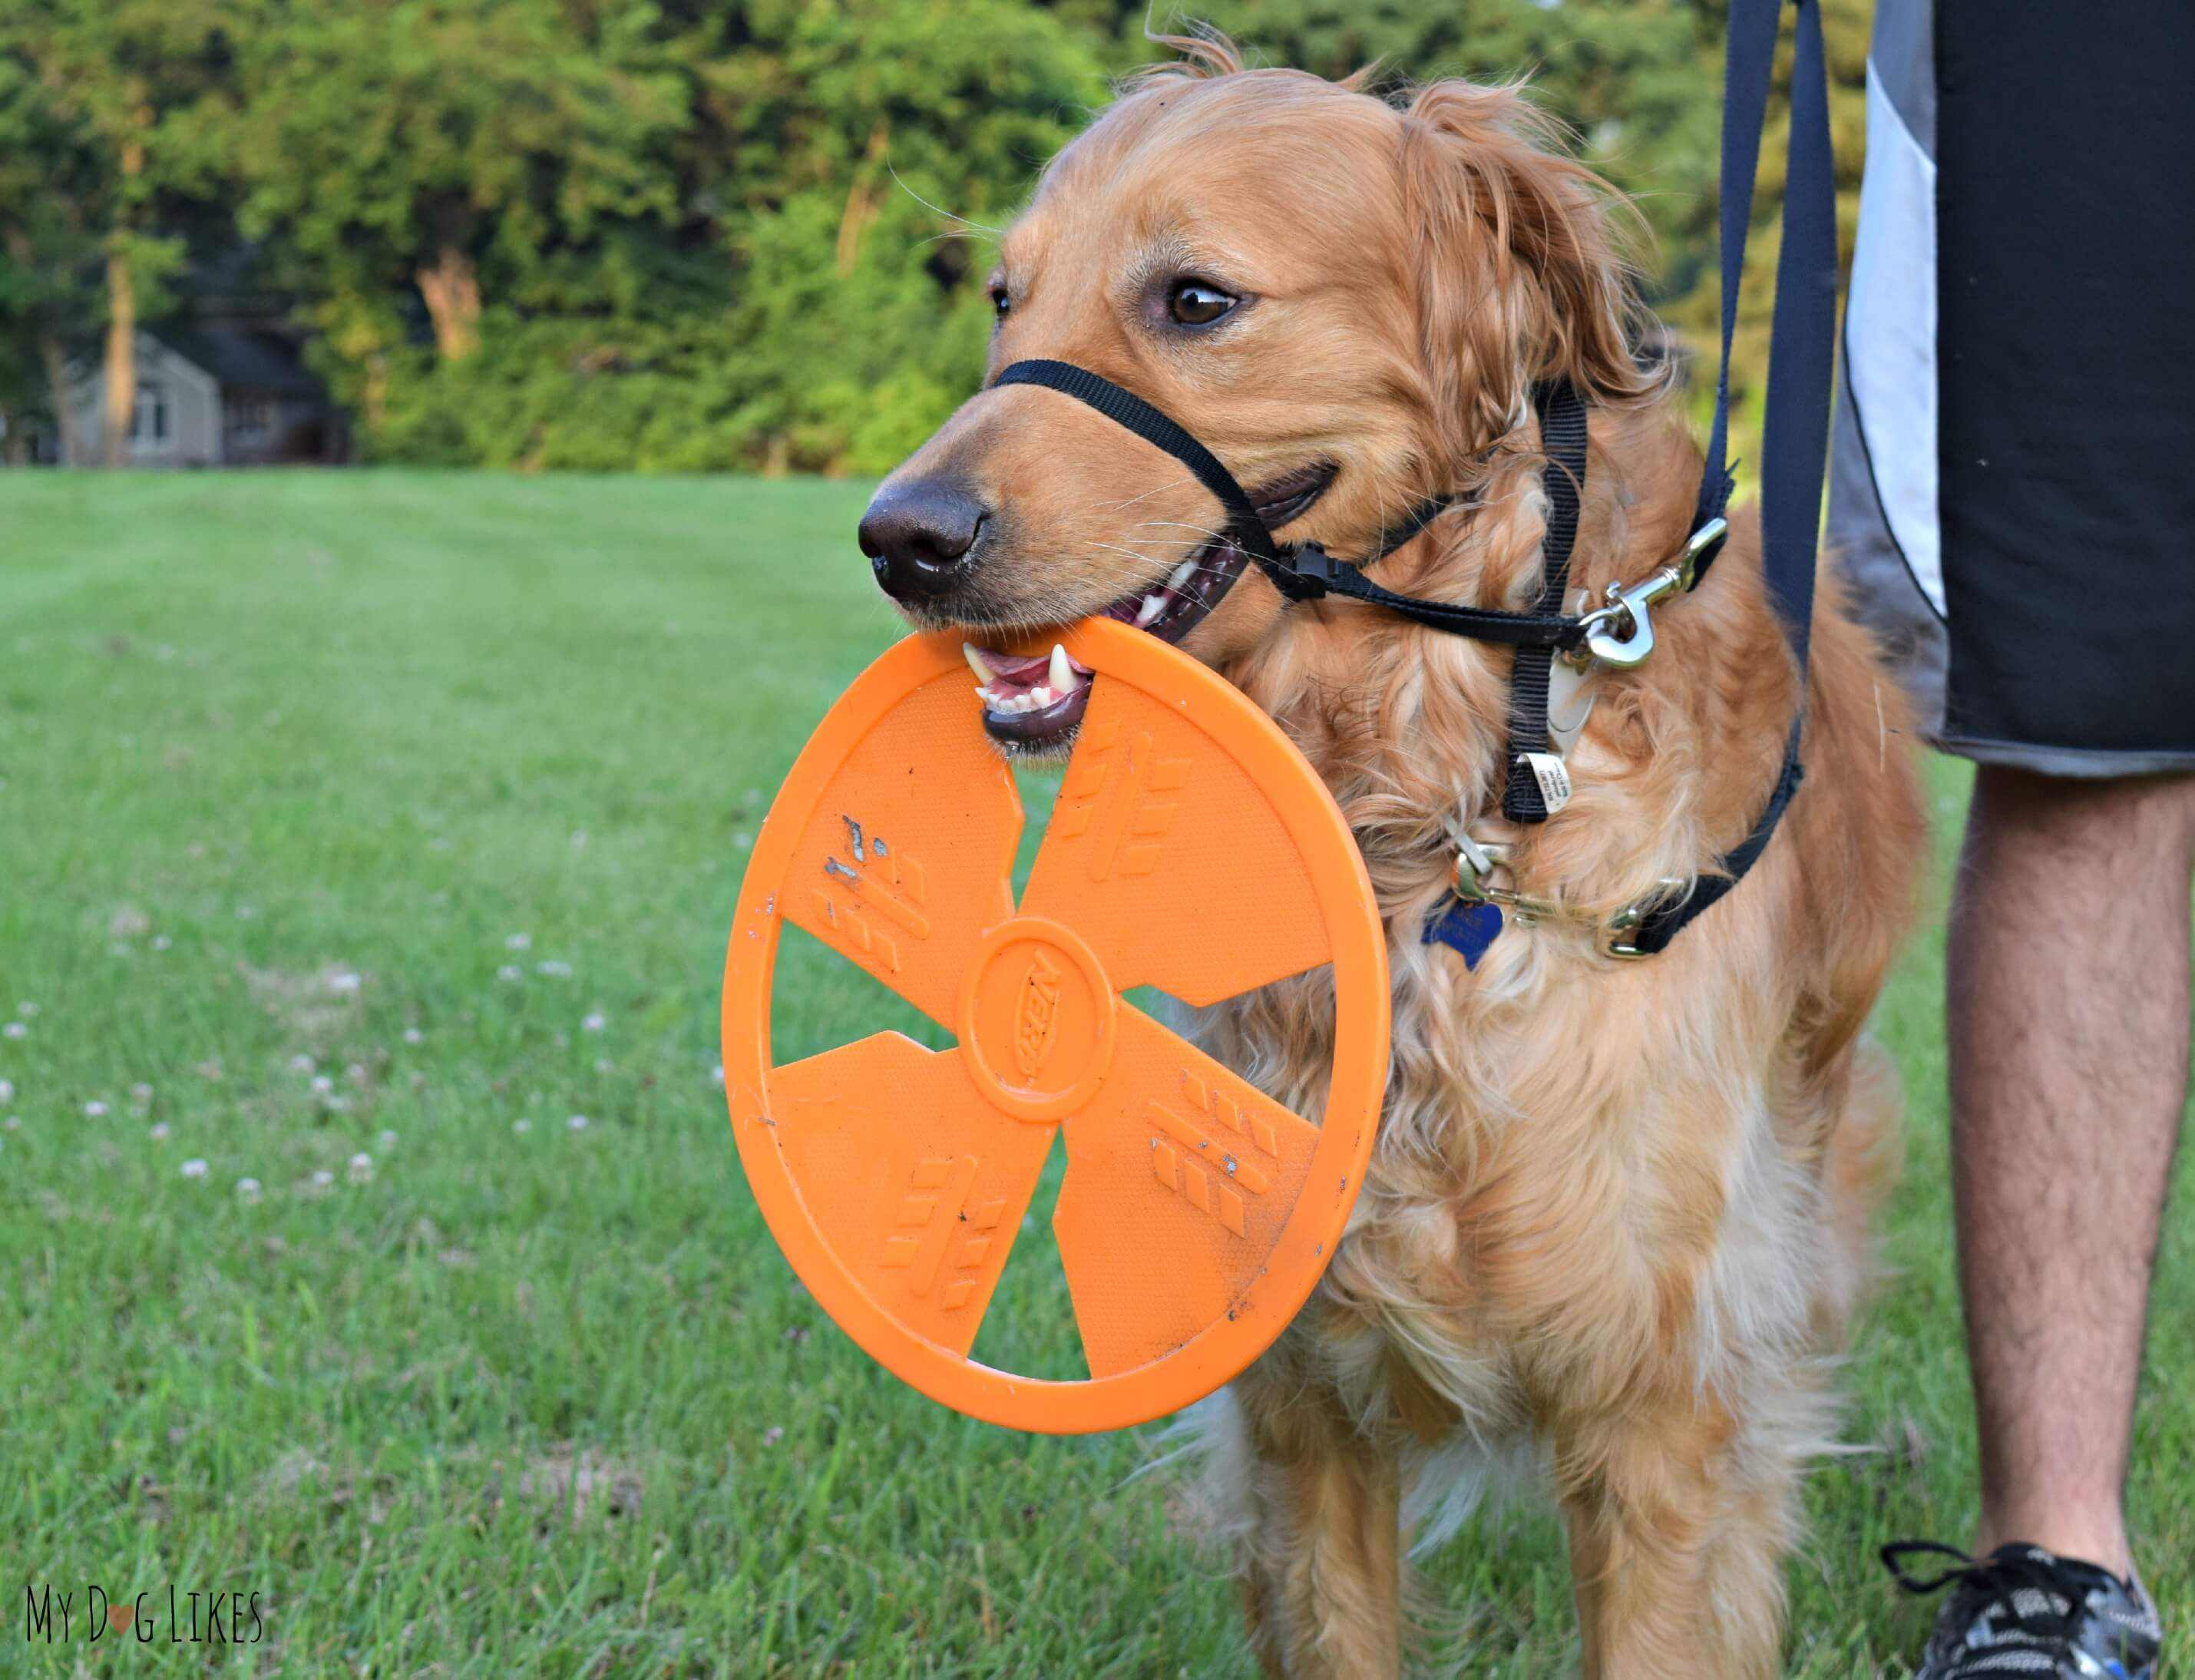 We Love That The Nerf Dog Flyer Is Easy For Charlie To Pick Up And Carry